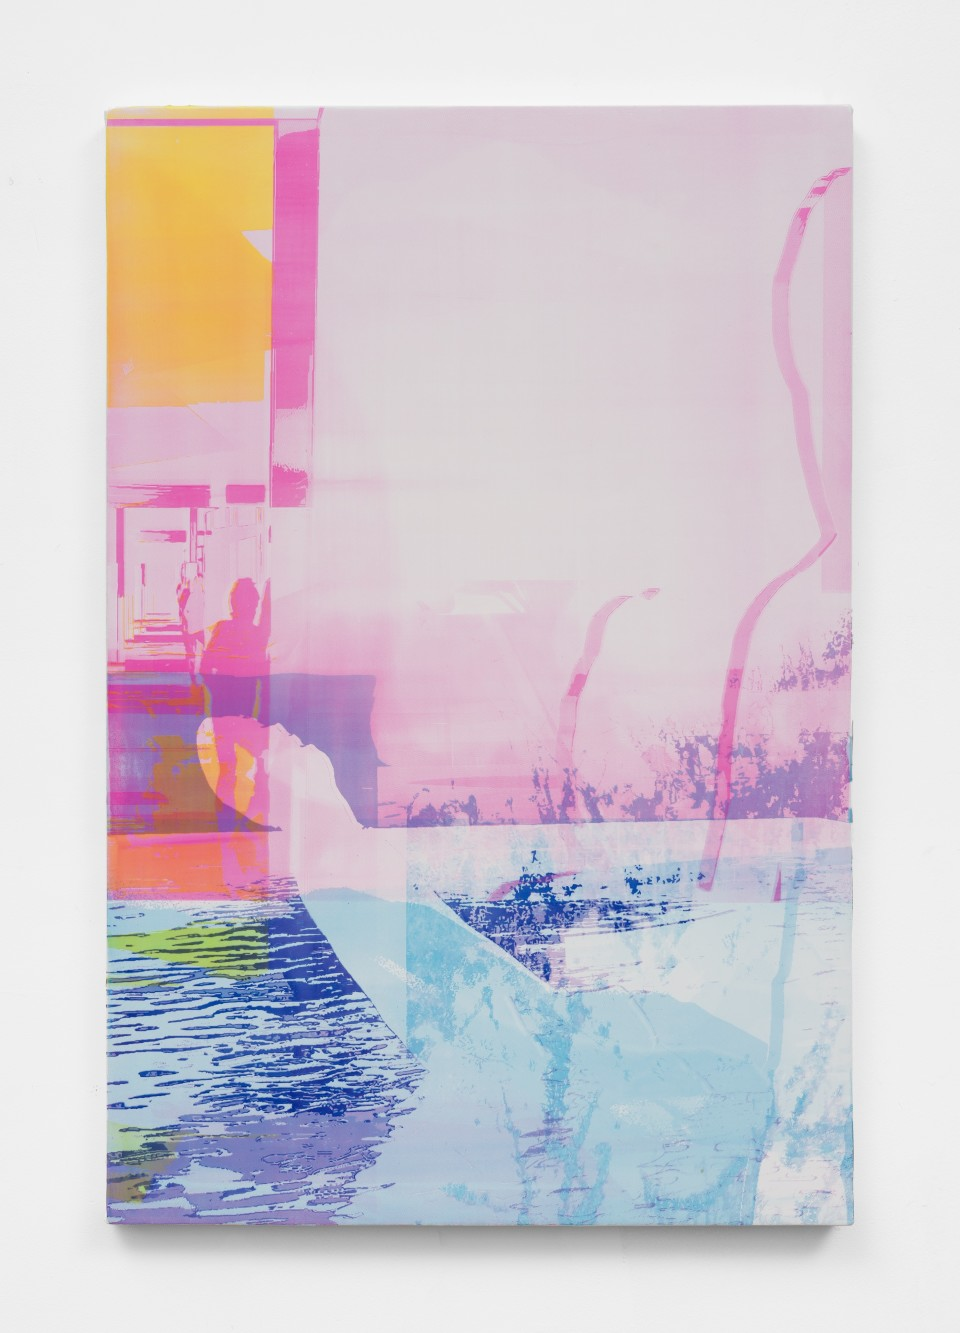 Image: Zoe Walsh  Moon is always fading, 2021  acrylic on canvas-wrapped panel  30 x 20 inches (76.2 x 50.8 cm)  (ZW.21.037.30)